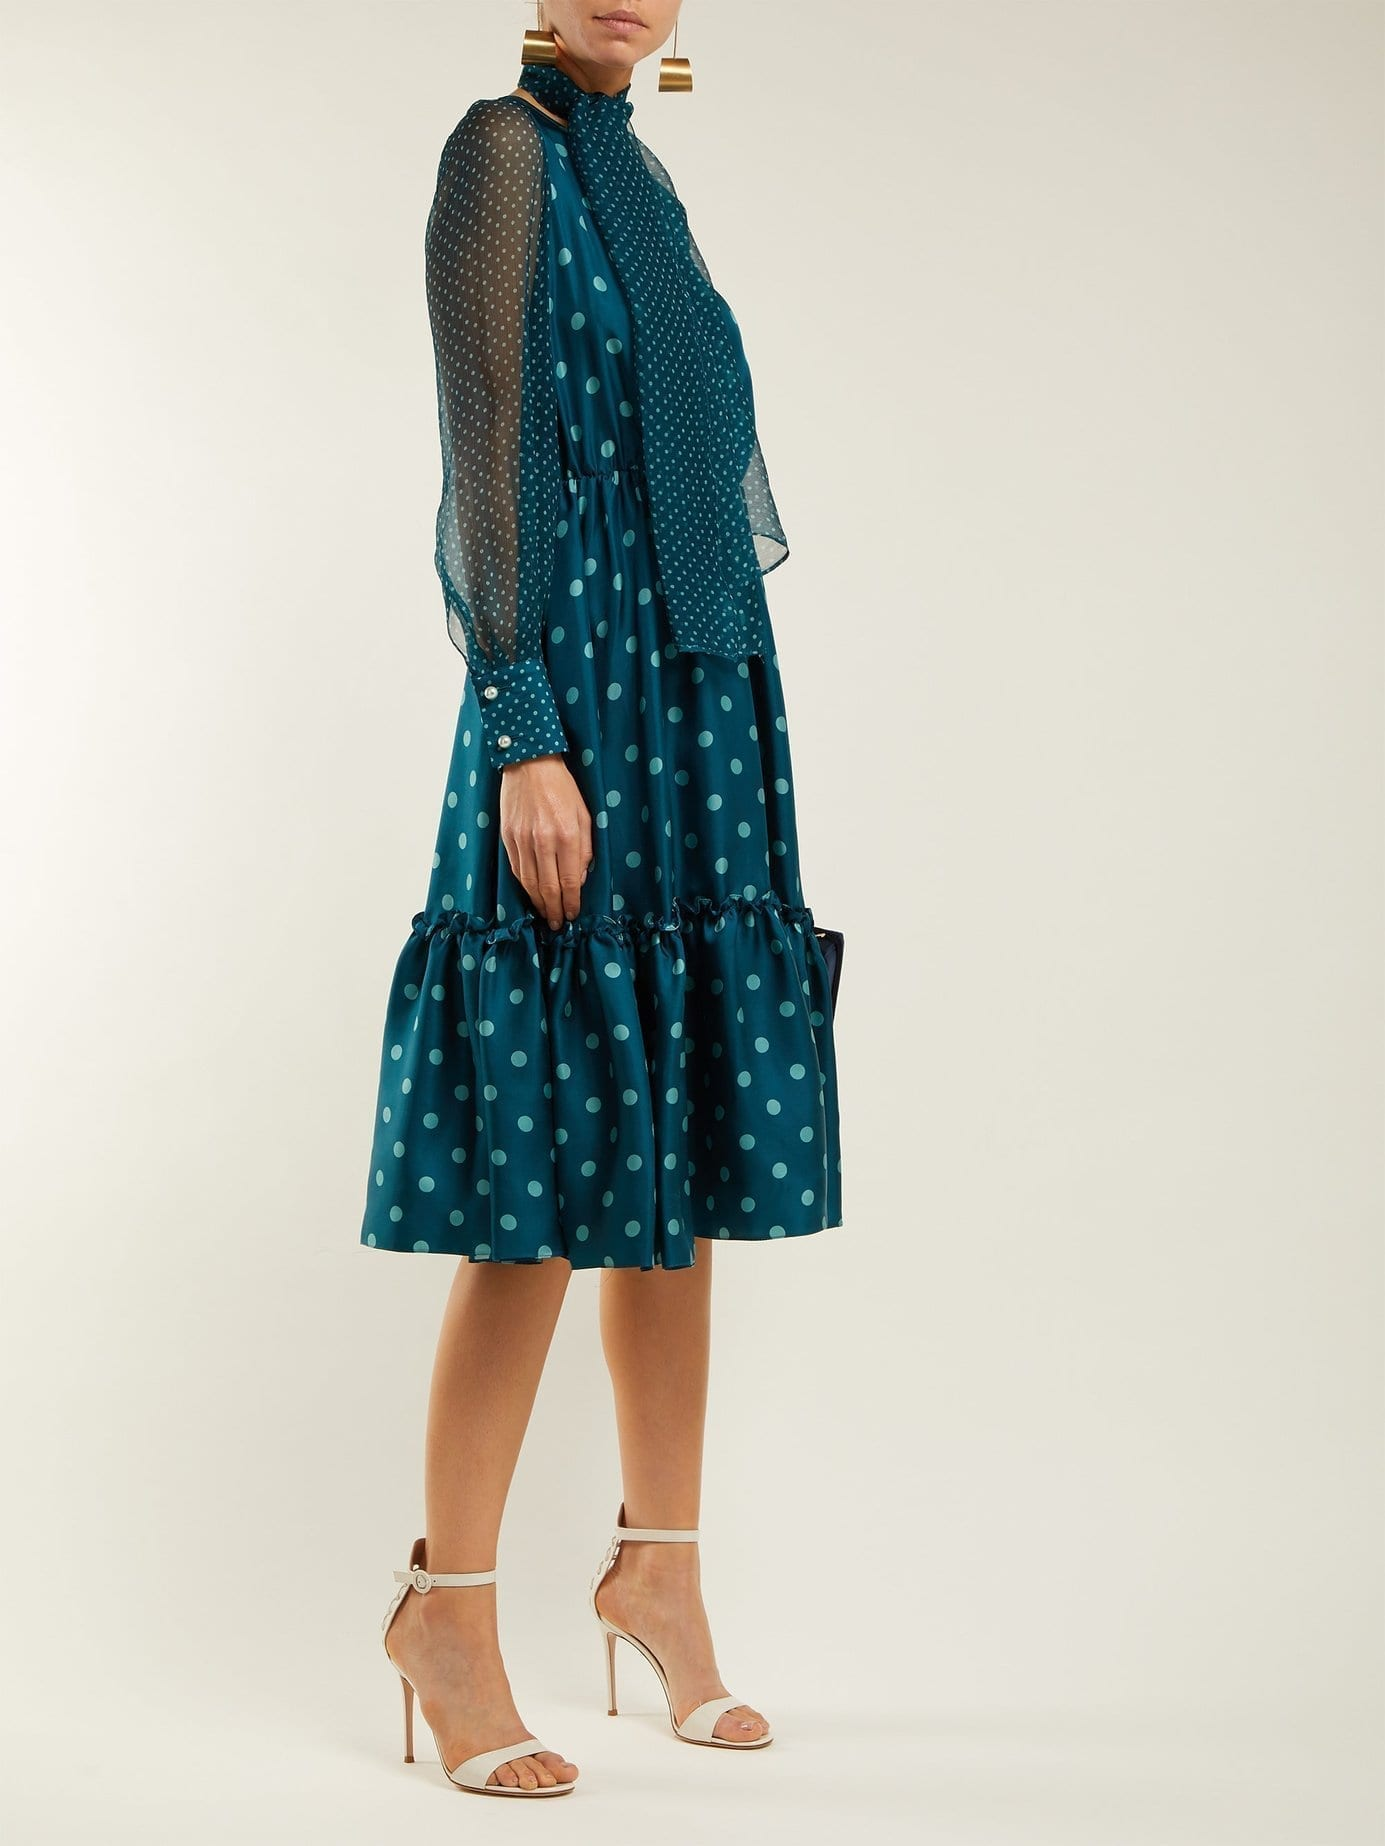 LUISA BECCARIA Polka Dot Silk Midi Teal Blue Dress